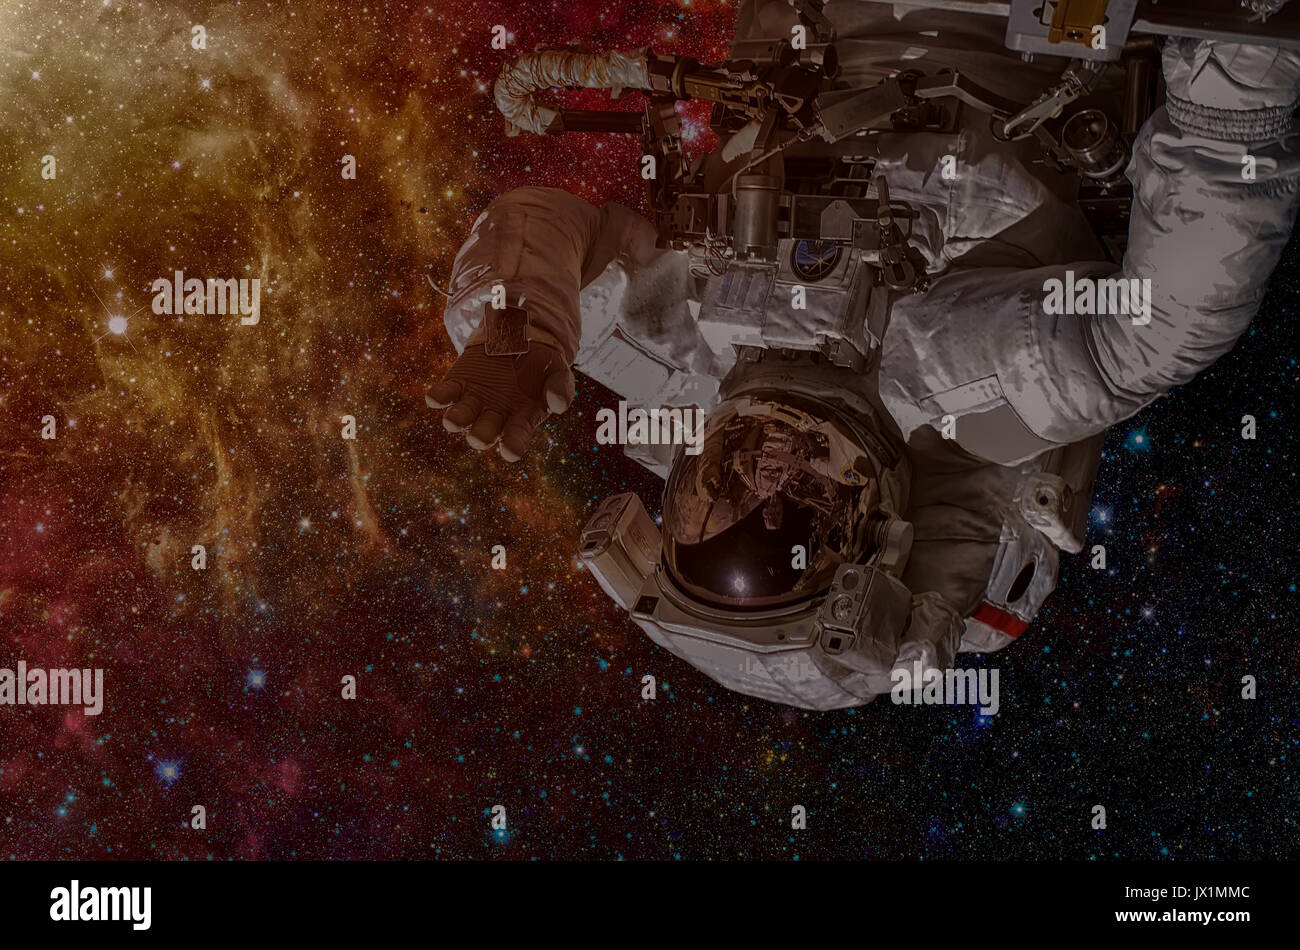 NASA space exploration astronaut. Elements of this image furnished by NASA. - Stock Image